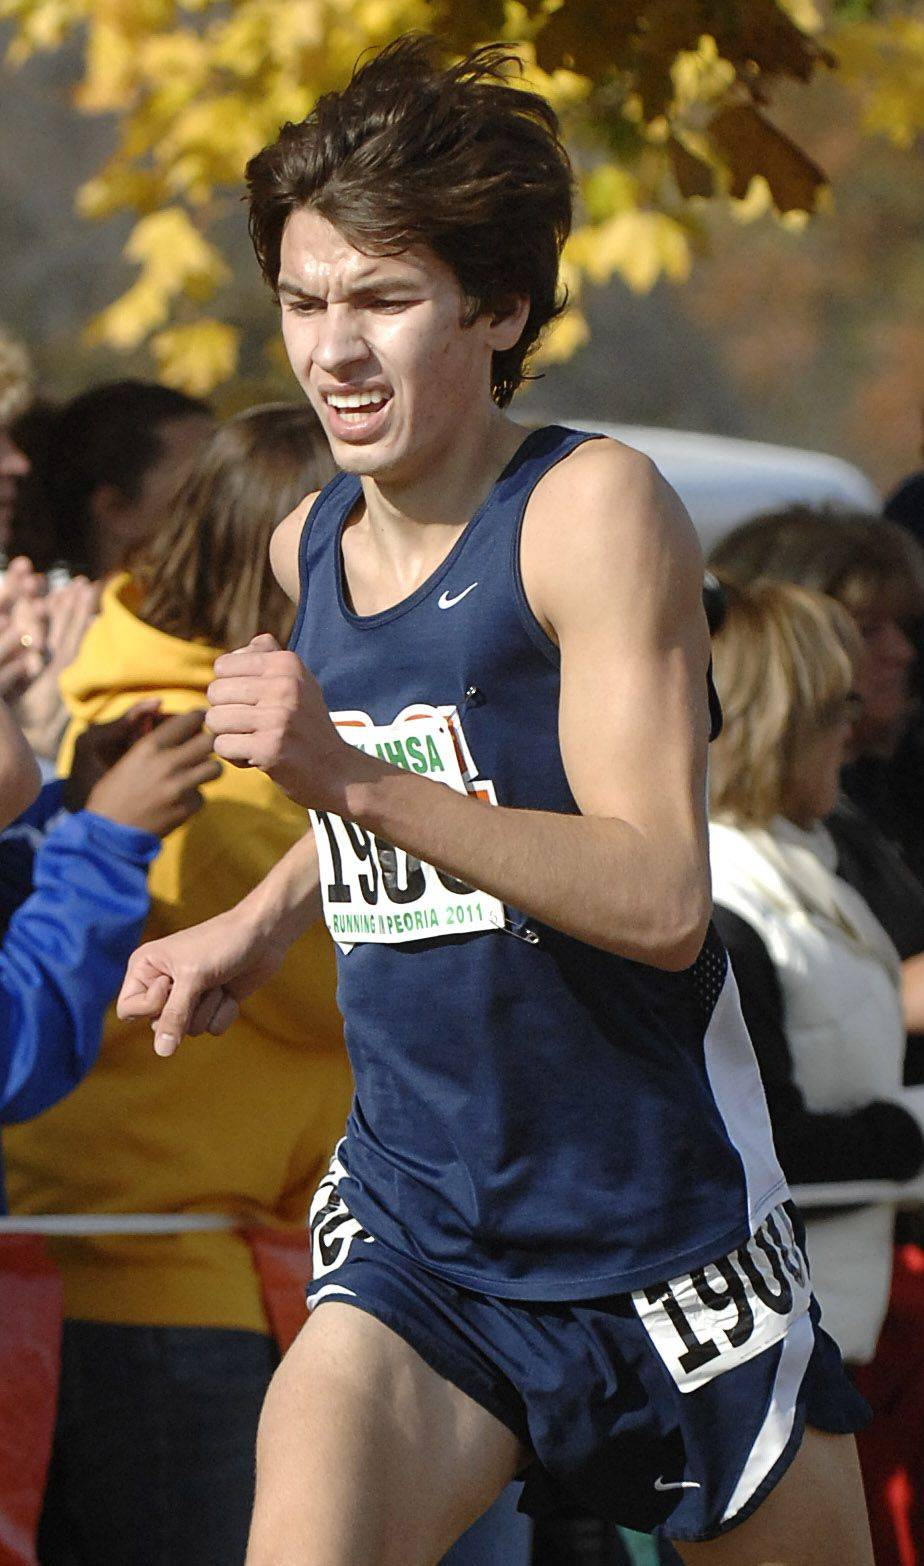 Buffalo Grove's Jereme Atchison takes 5th place in the 3A state cross country final.